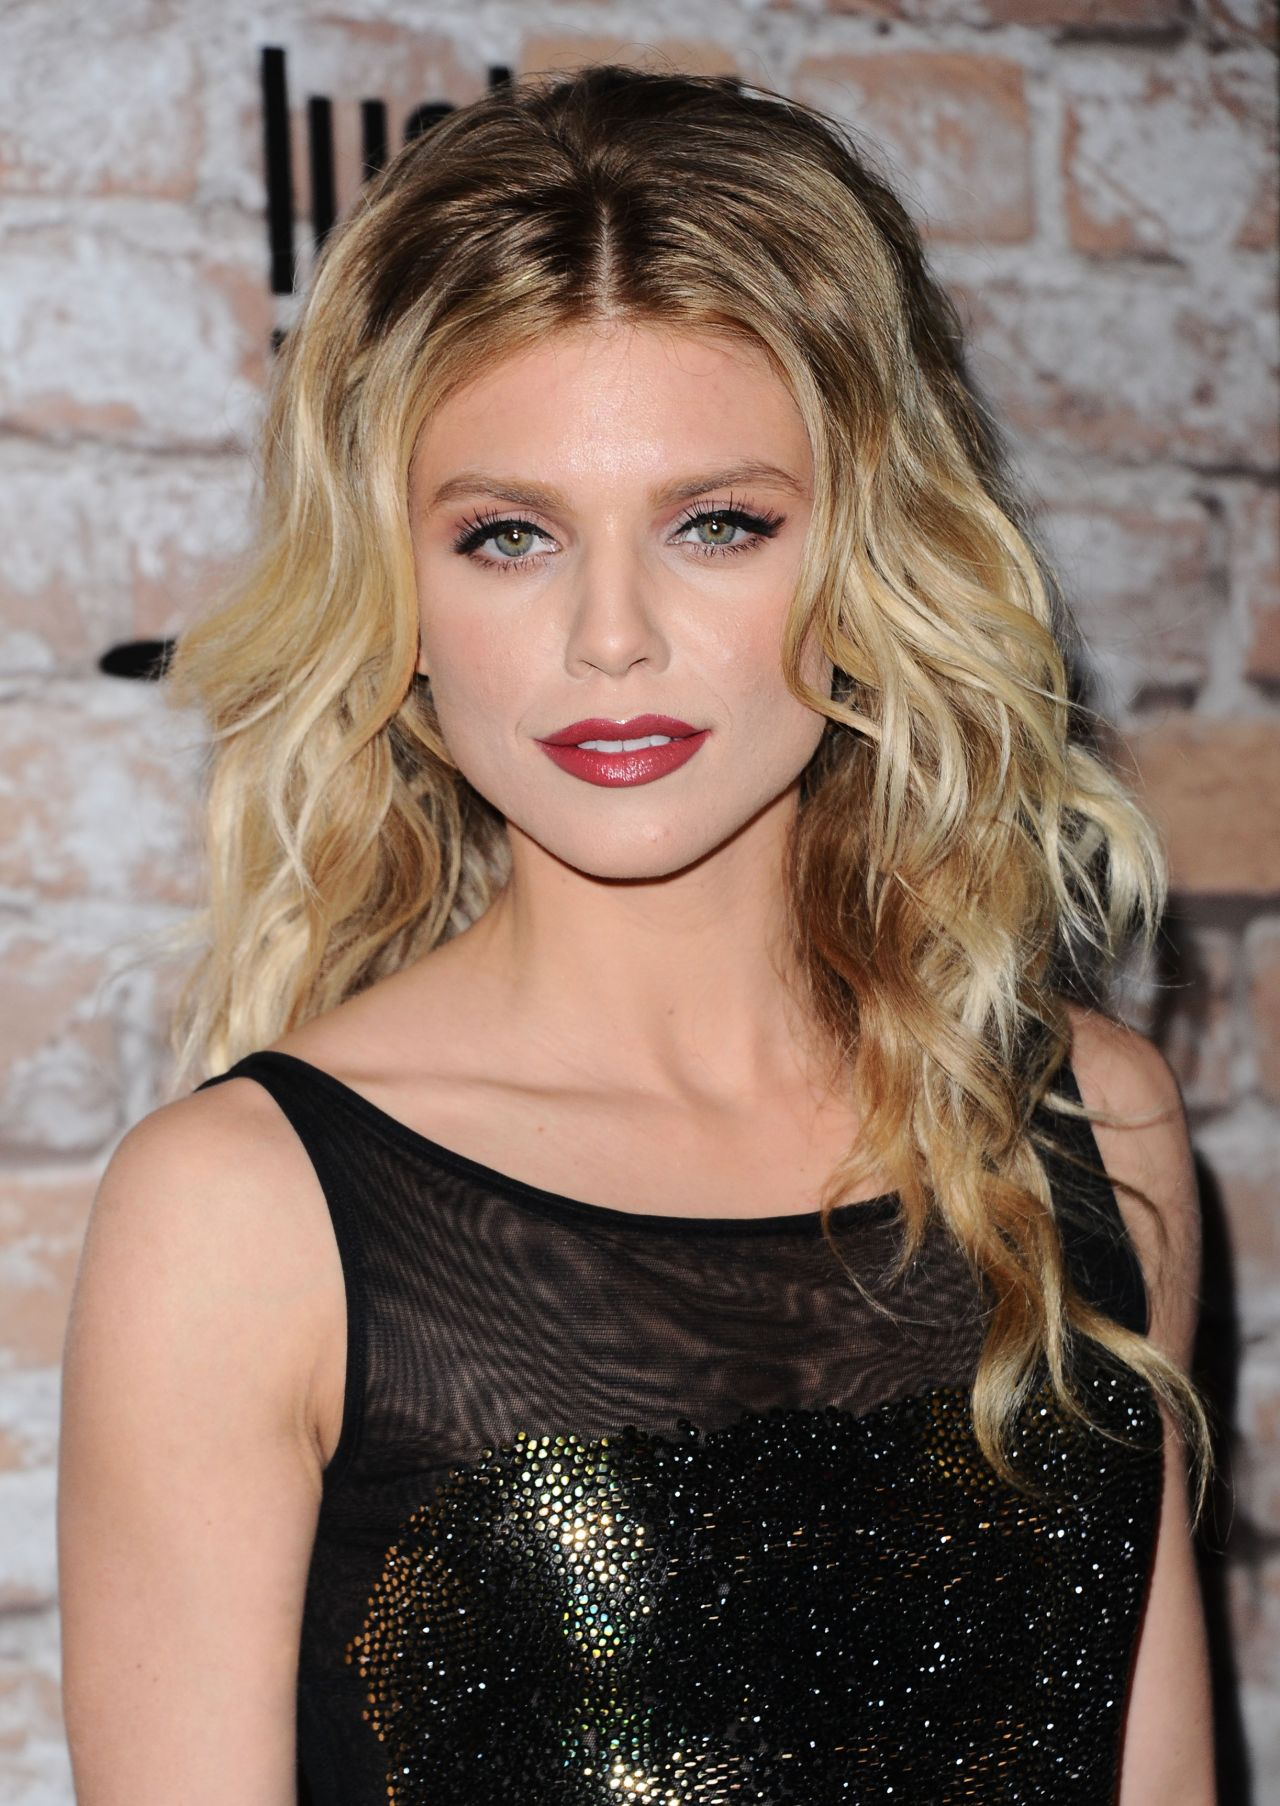 AnnaLynne McCord nude (19 foto and video), Pussy, Paparazzi, Selfie, swimsuit 2020